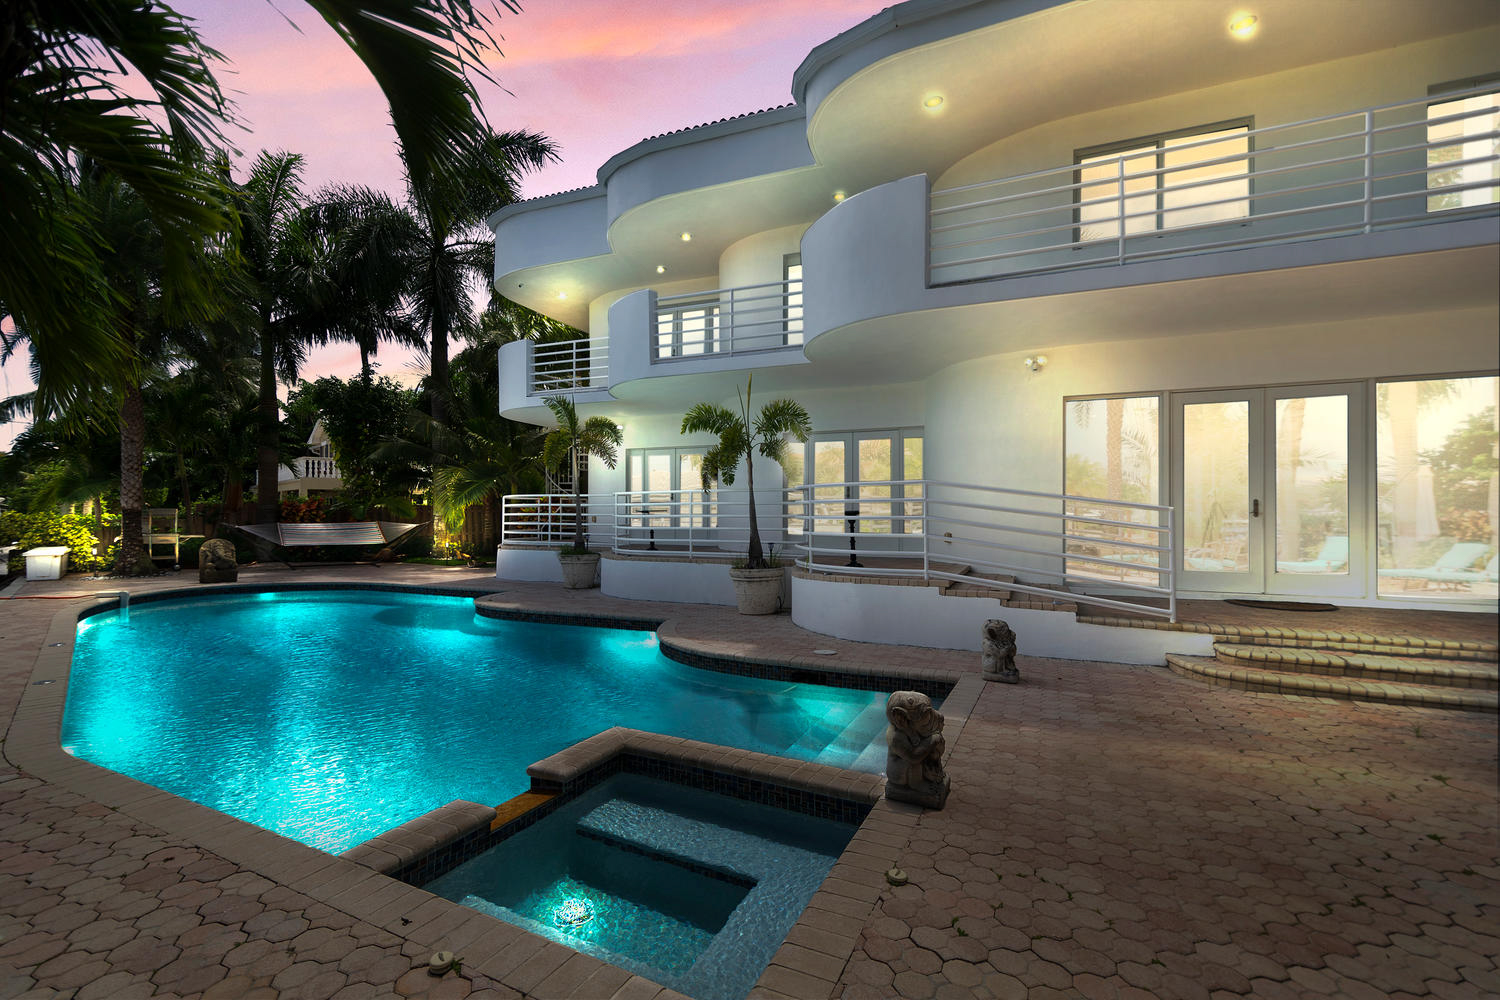 Fort Lauderdale FL Vacation Rental Welcome to Sunrise